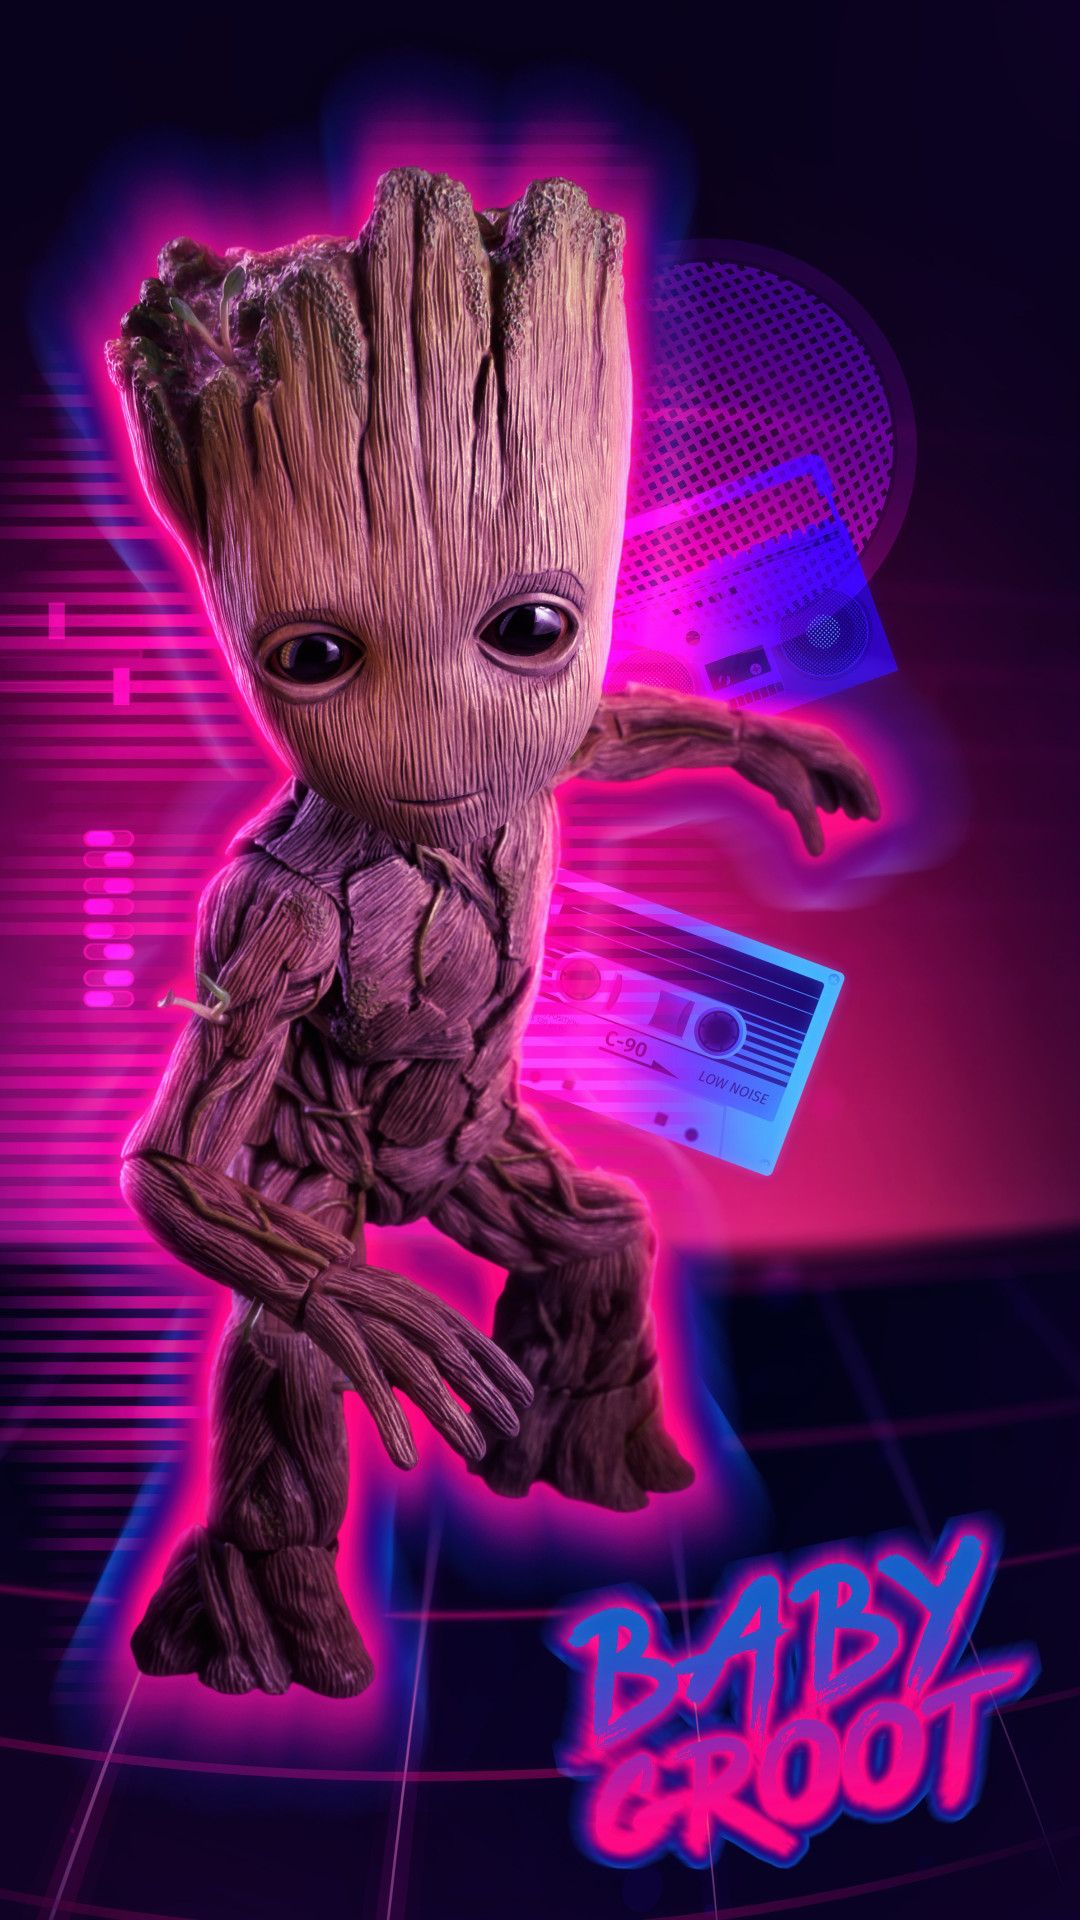 4k Baby Groot Mobile Wallpaper Iphone Android Samsung Pixel